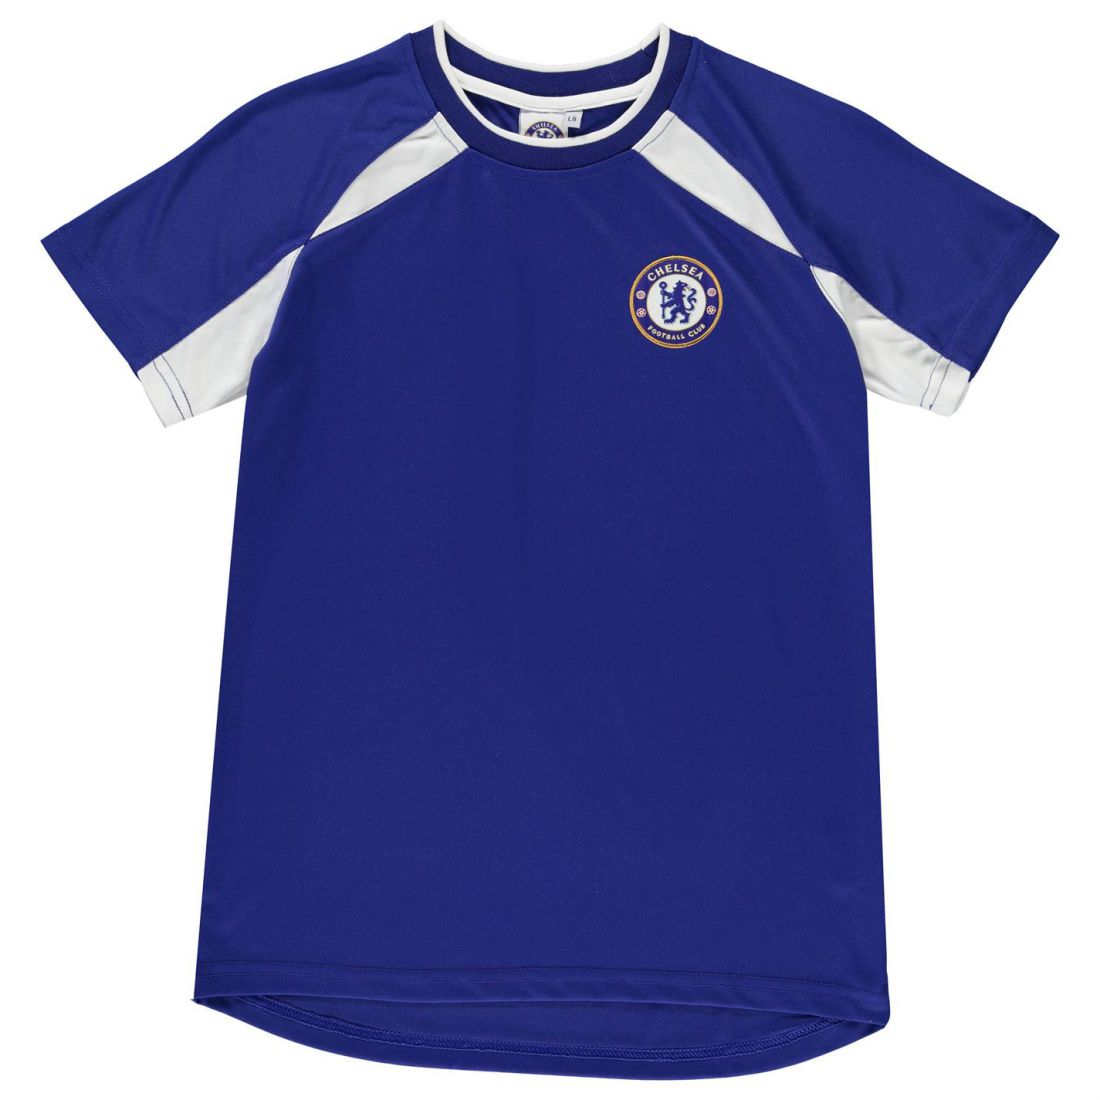 buy popular a568a e75a6 Details about Source Lab Kids Chelsea Poly T Shirt Infant Boys Football  Sports Training Top